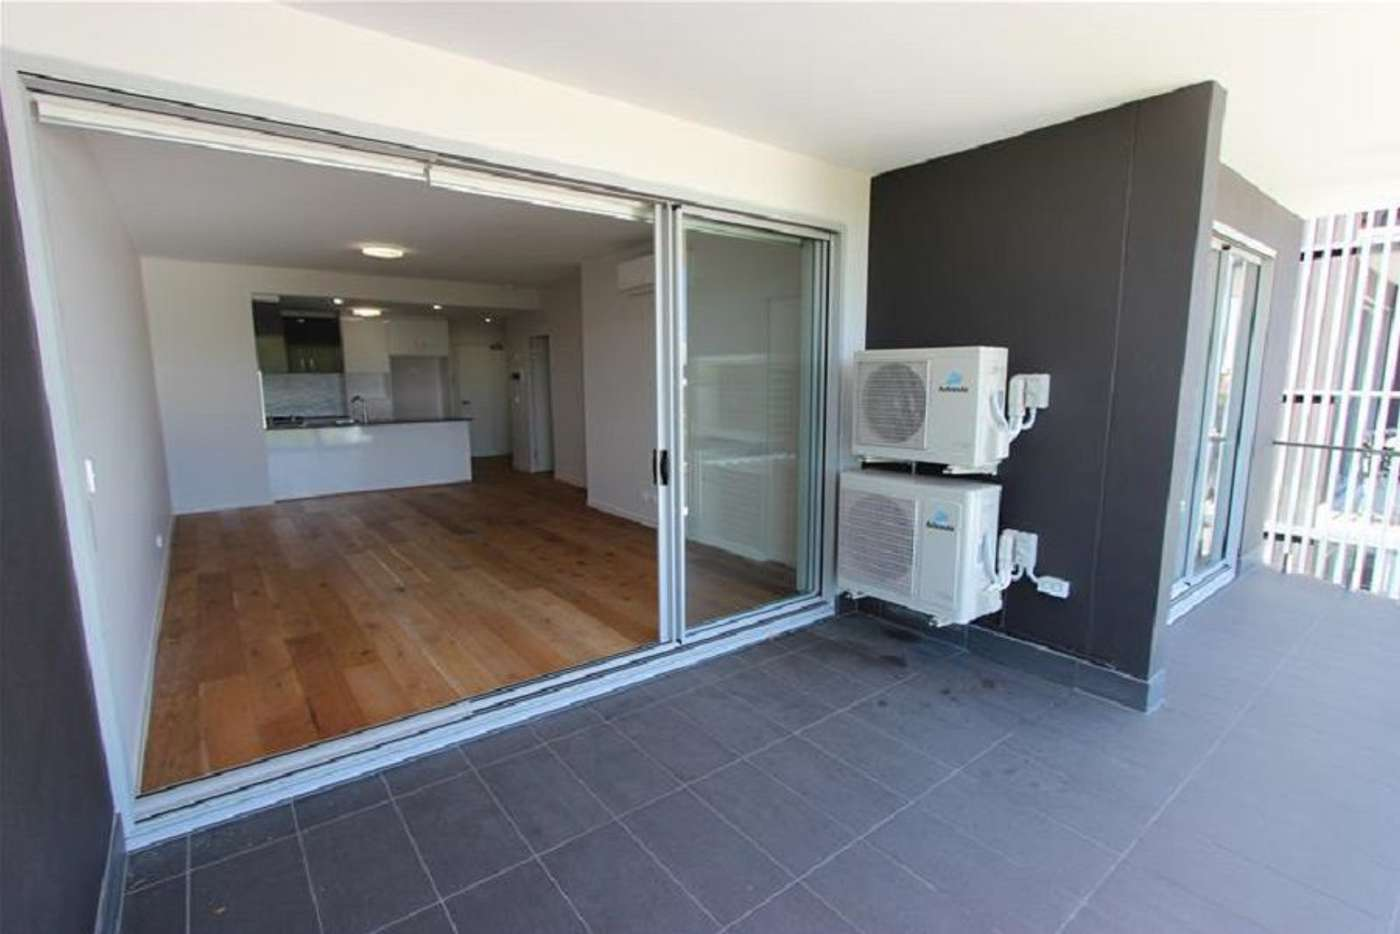 Fifth view of Homely apartment listing, 306/28-32 Cartwright St, Windsor QLD 4030